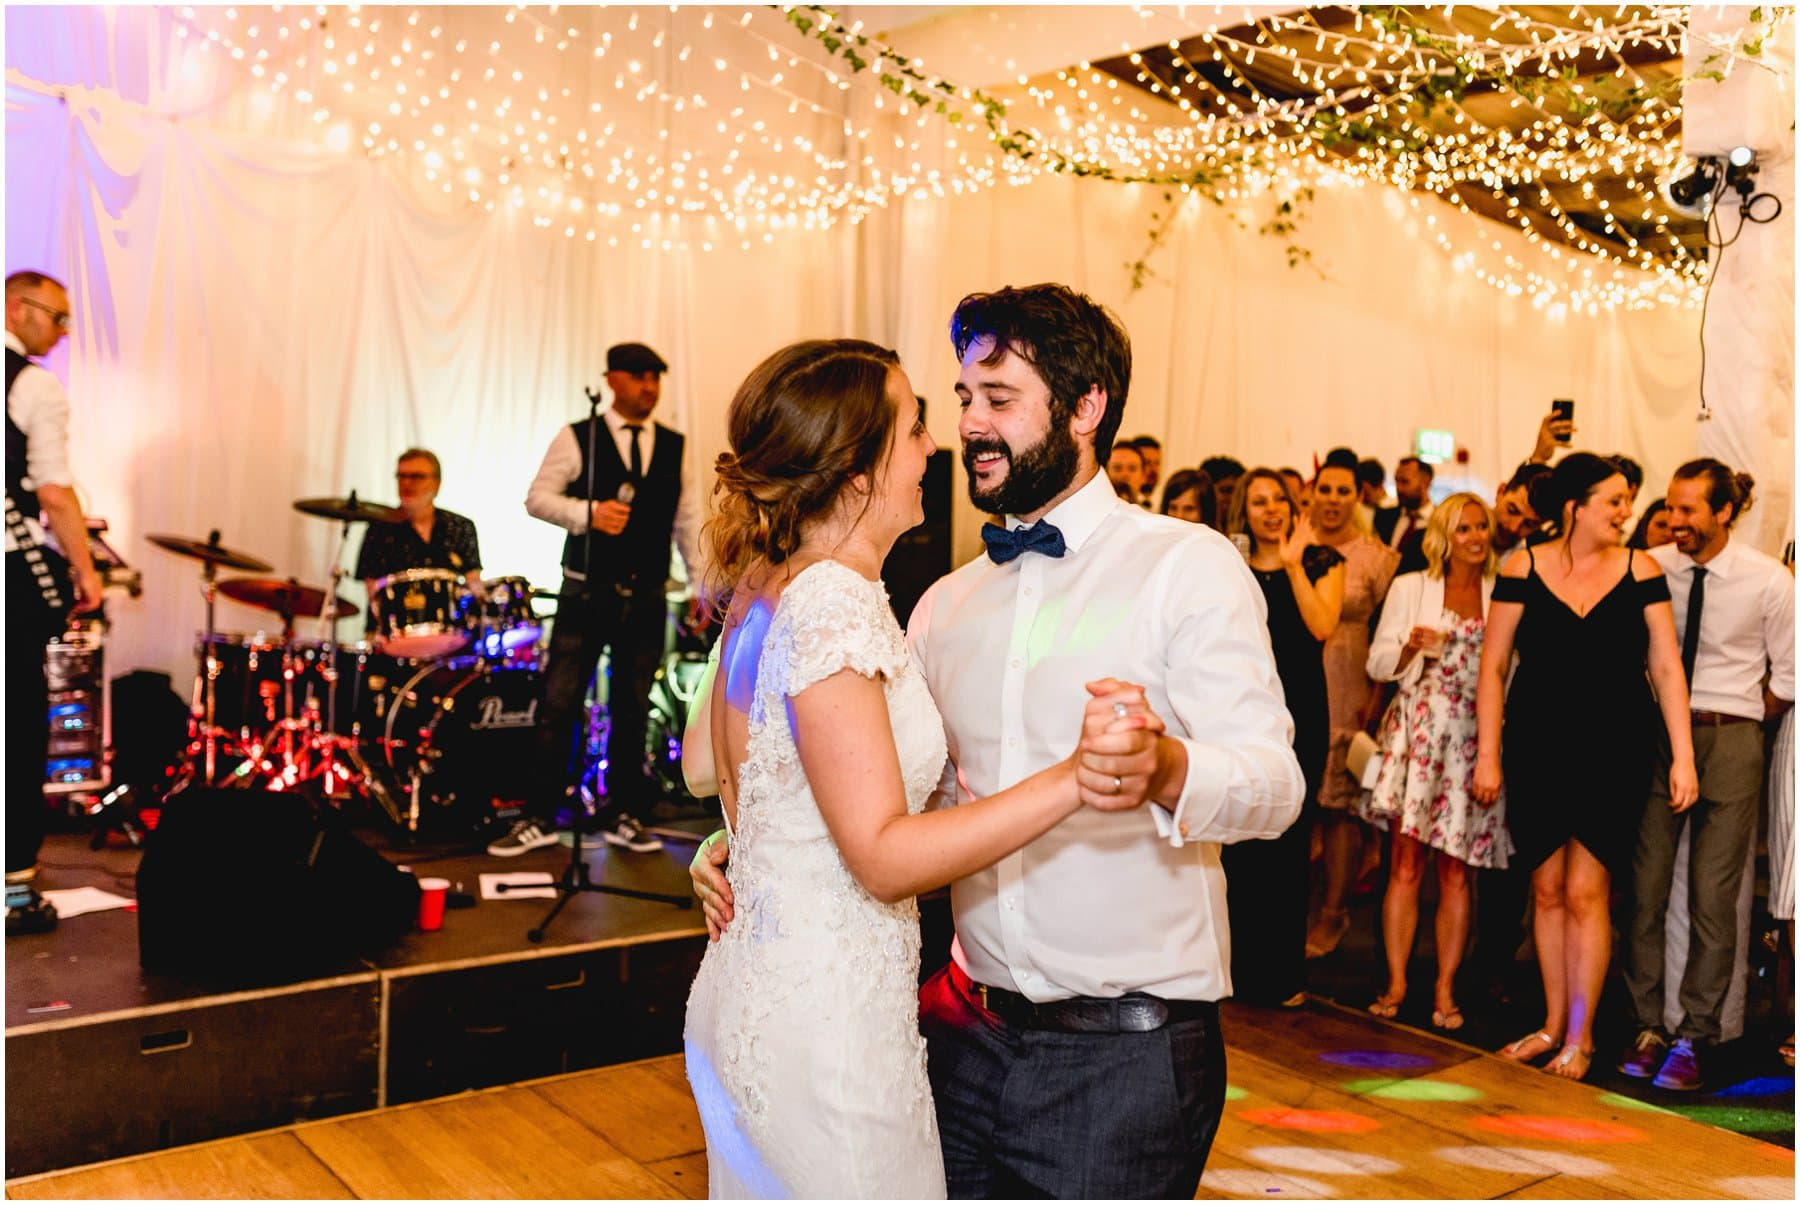 Jenna and Ben do first dance in the barn at their wedding in the Ash Barton Country Estate in Devon.